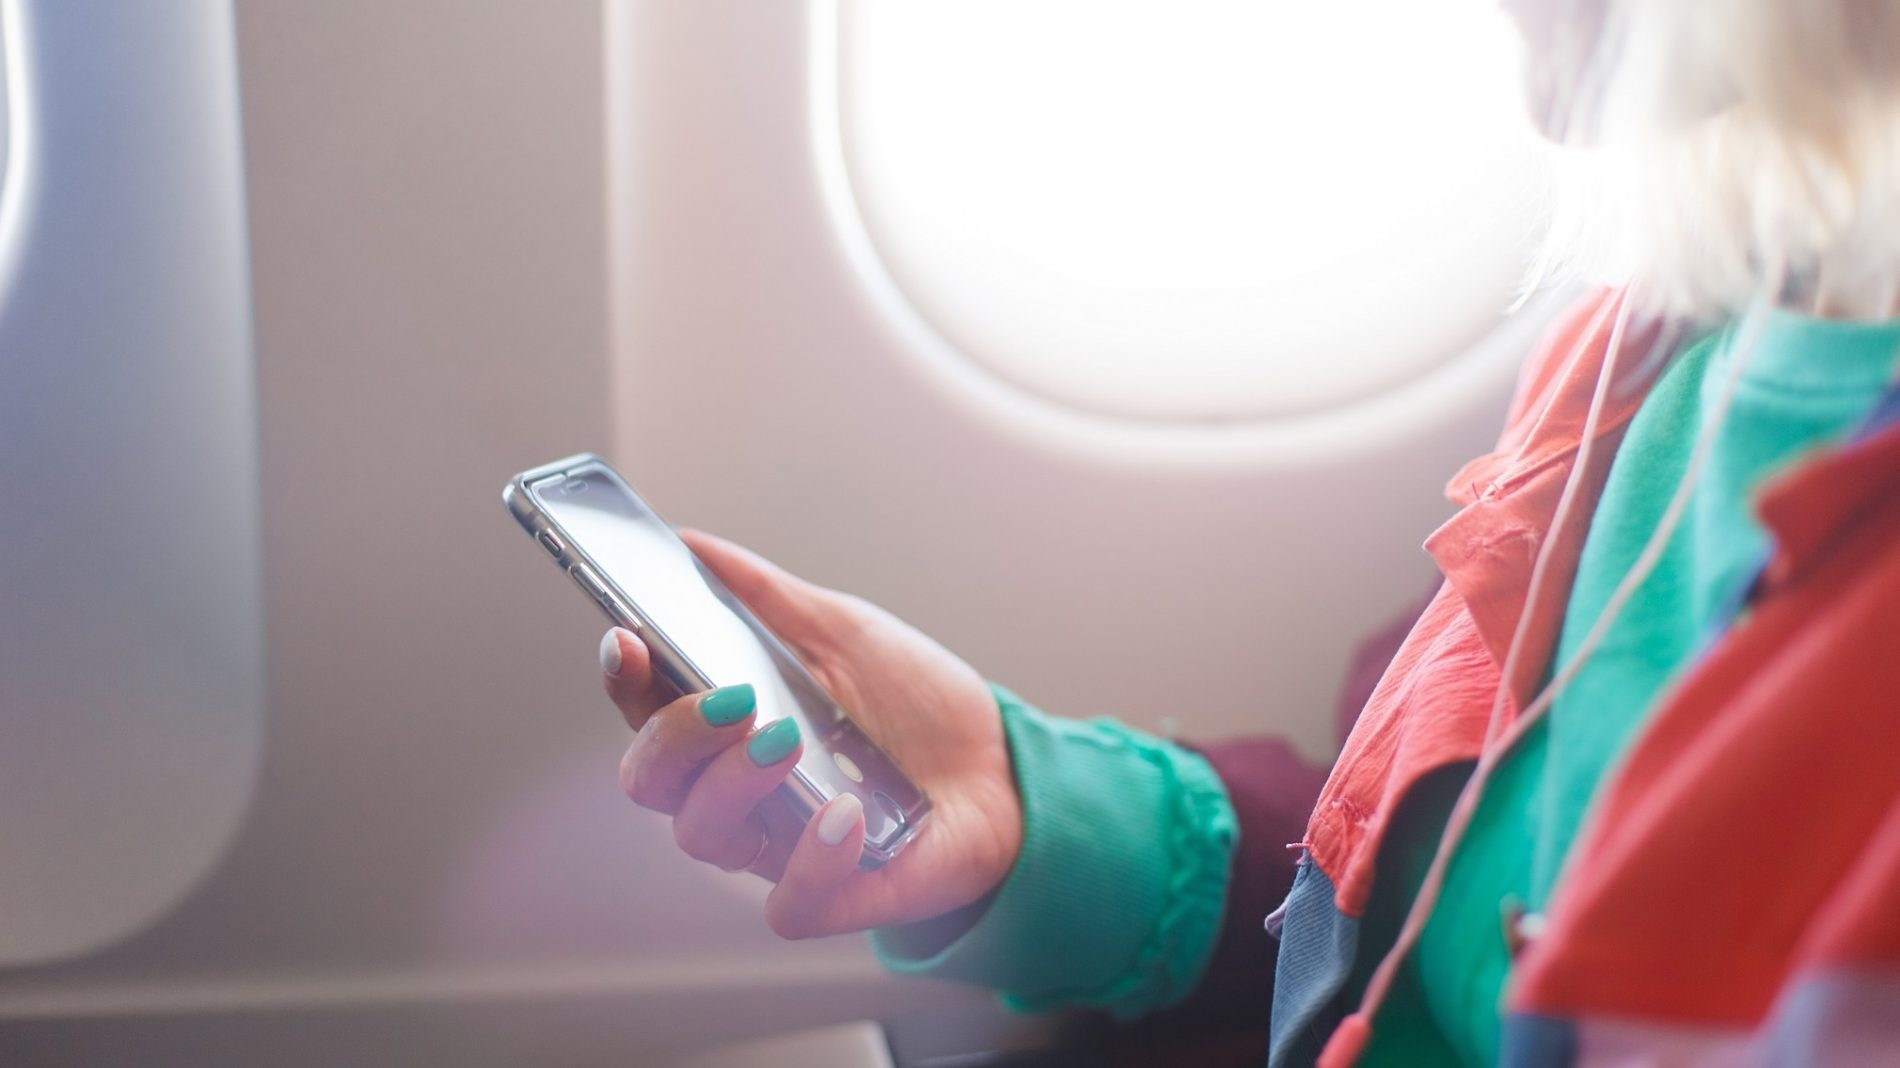 flying-airplane-music-airport-fly-mobile-phone-woman-business-woman-using-mobile-using-technology_t20_gox06Y